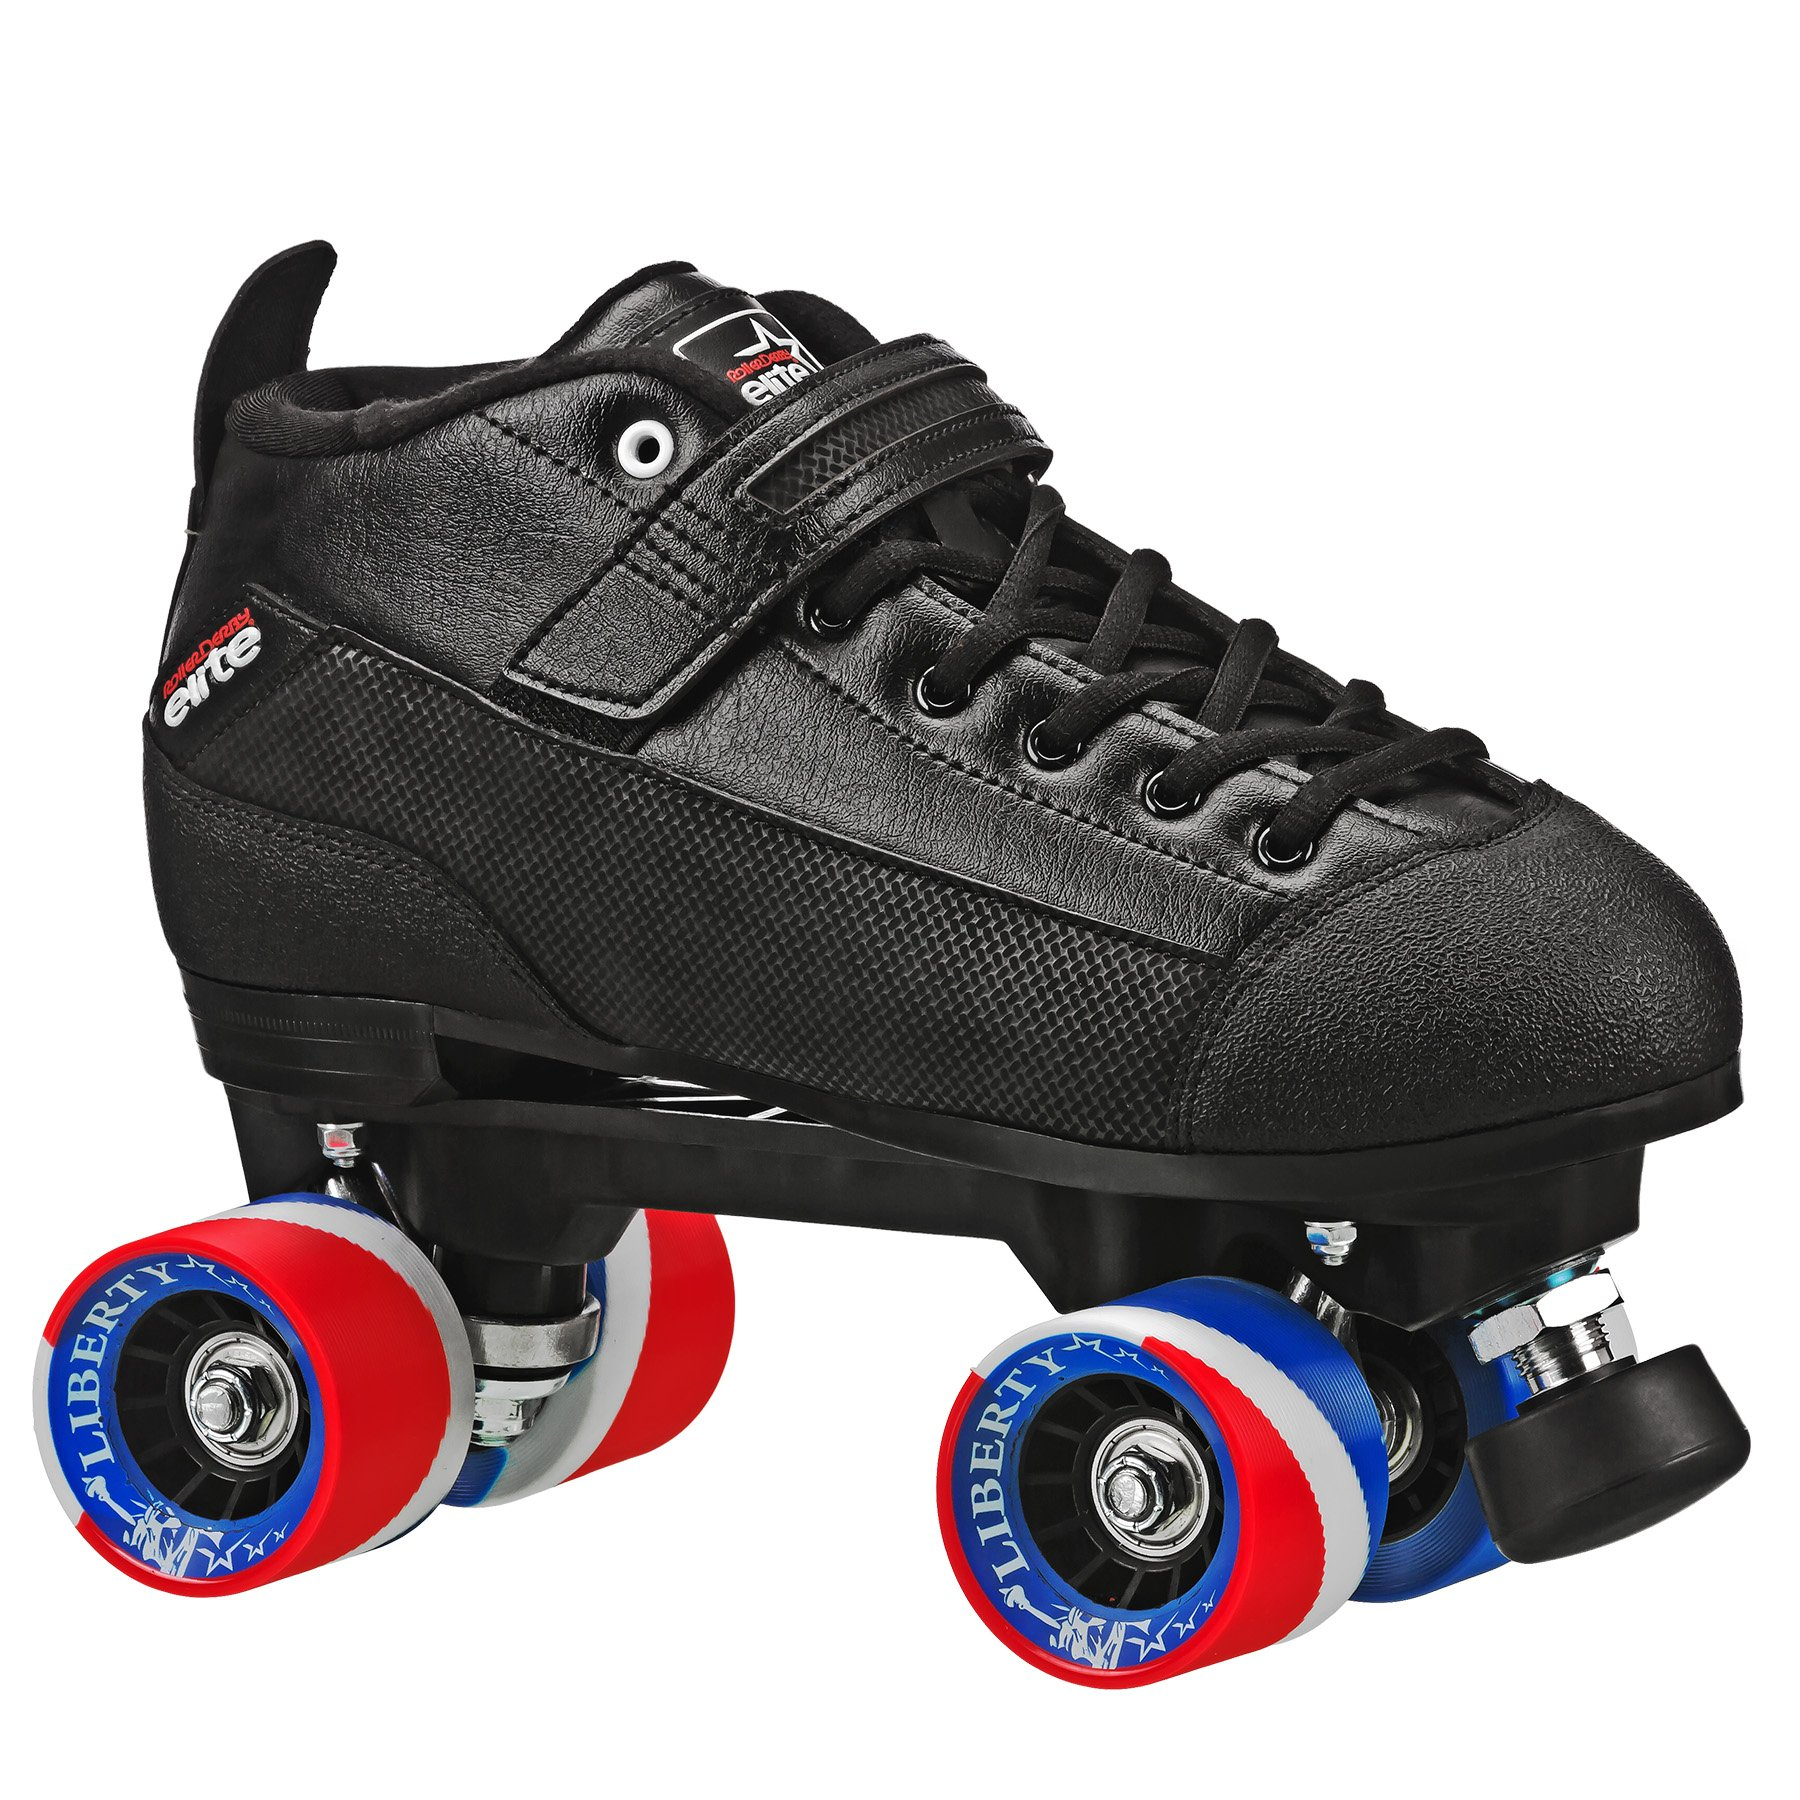 Roller Derby Revolution Elite Skates - sz 6